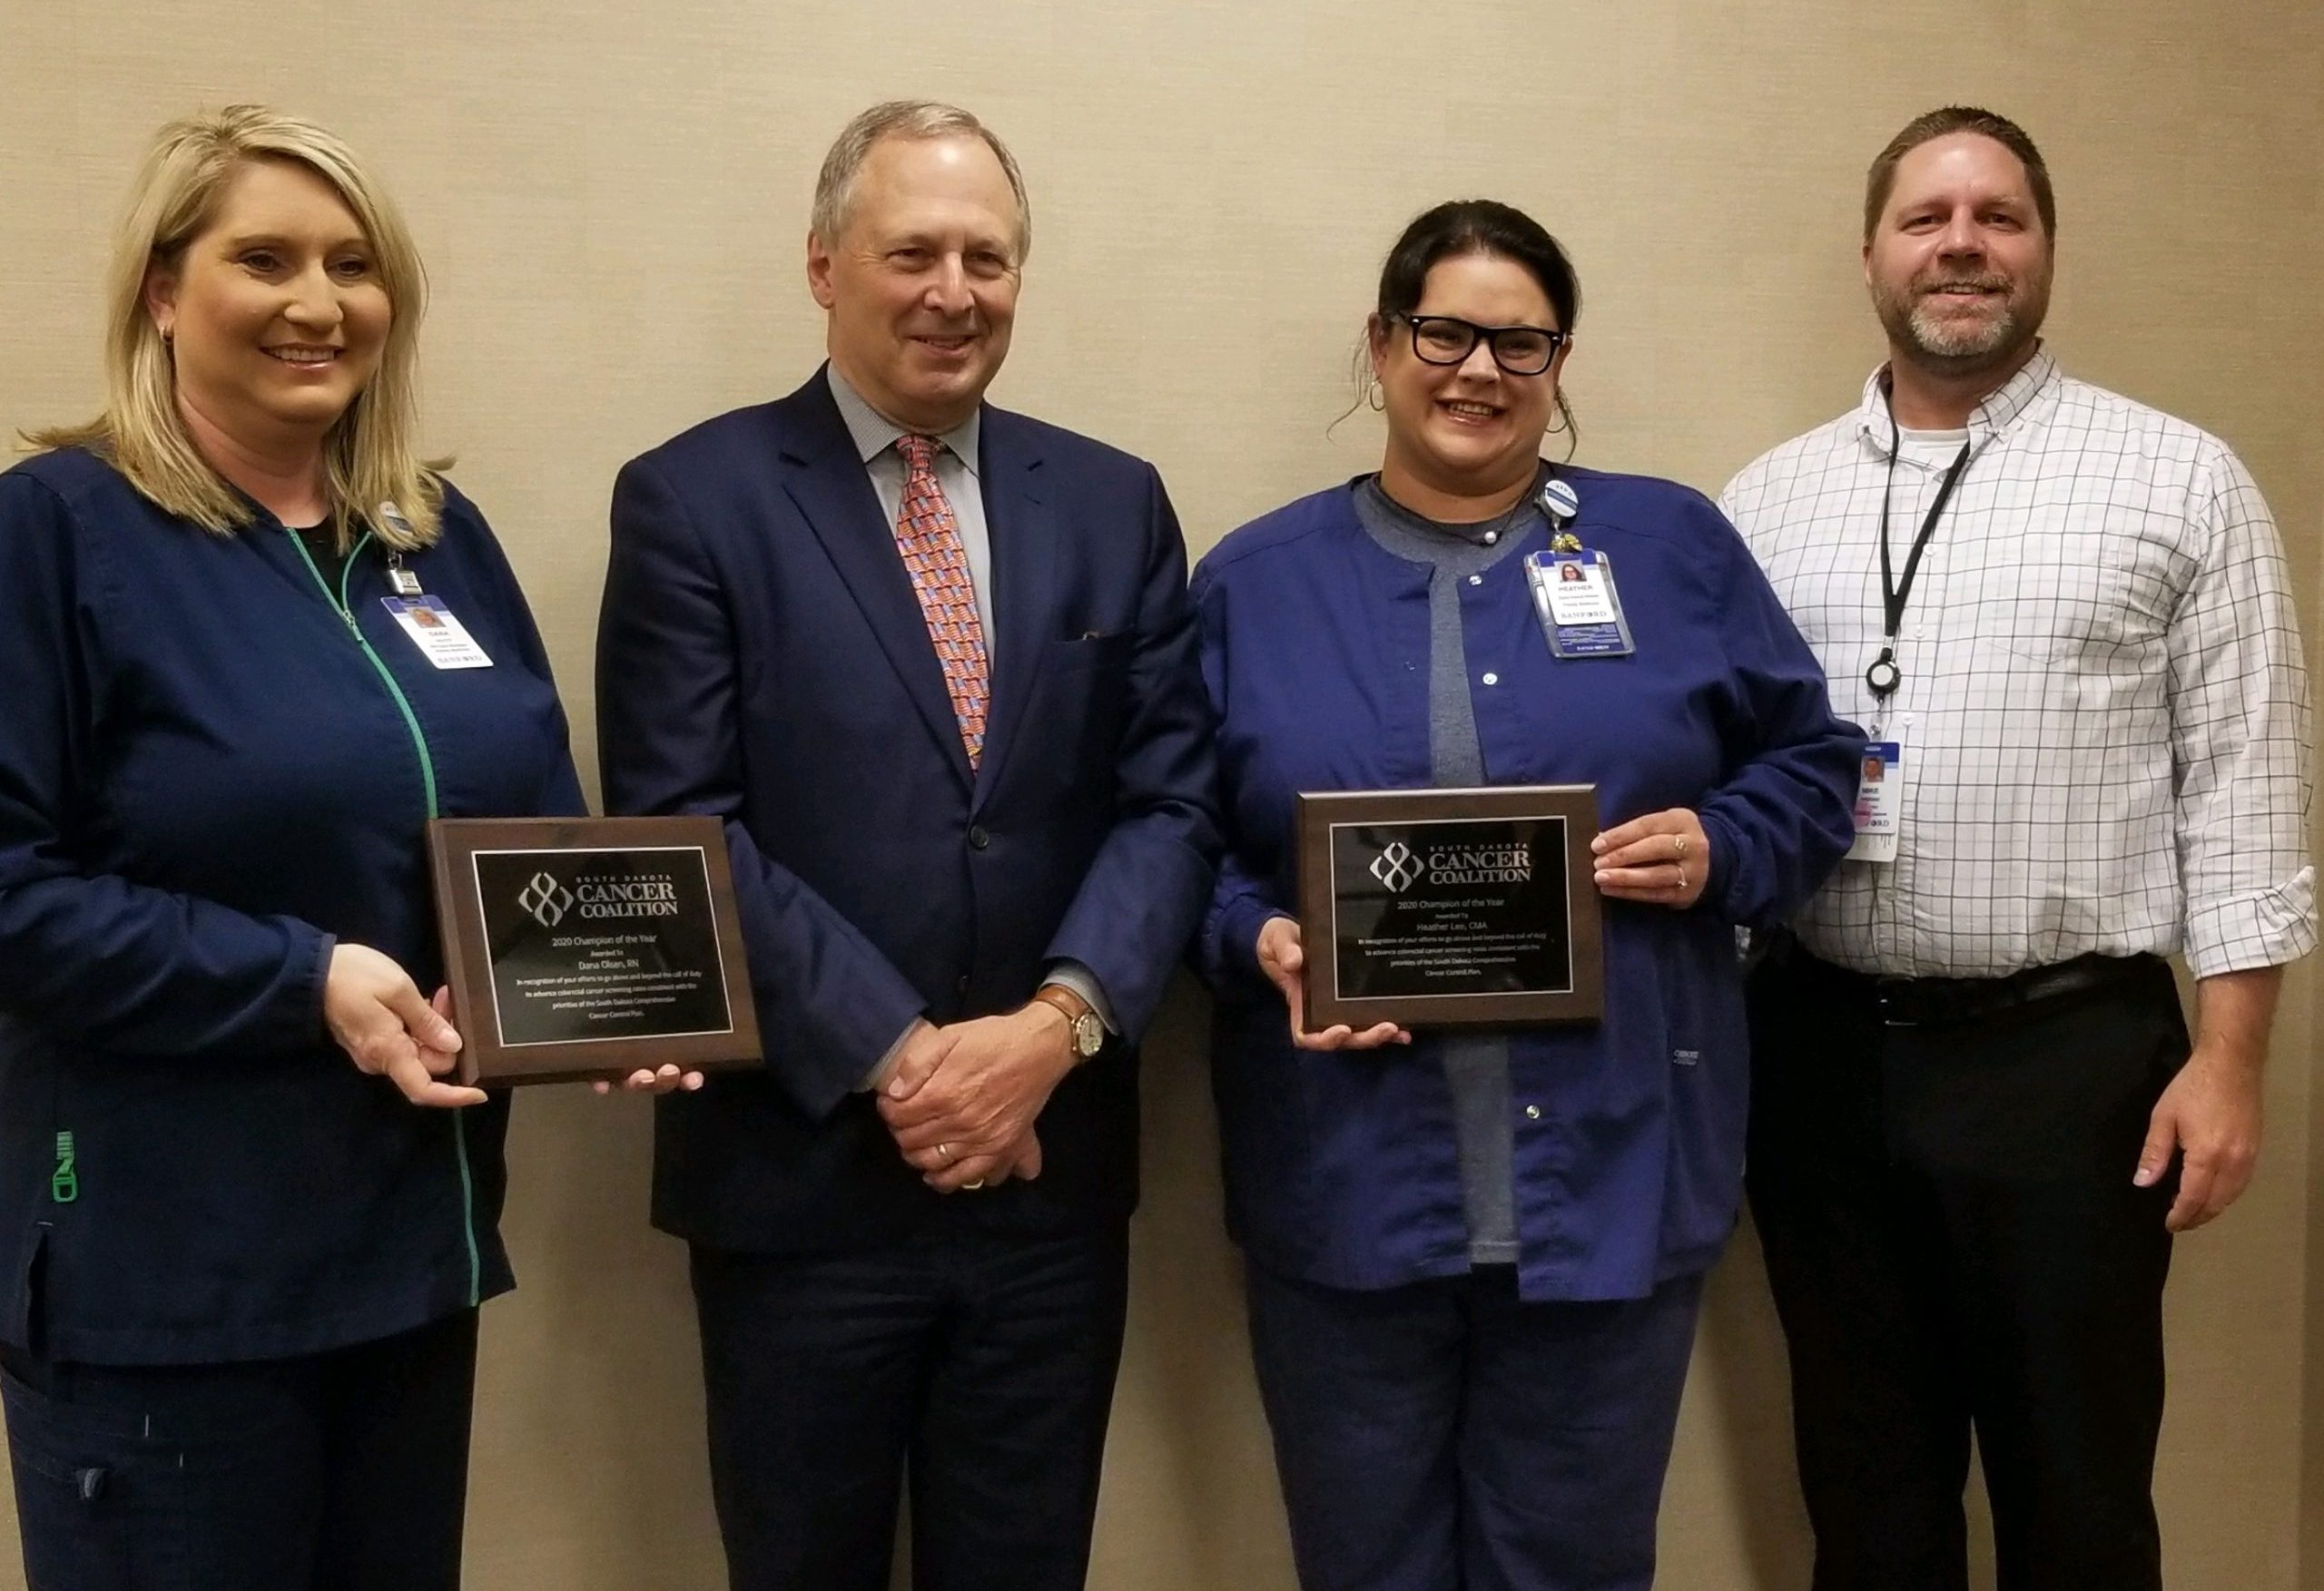 Colorectal Cancer Champions of the Year